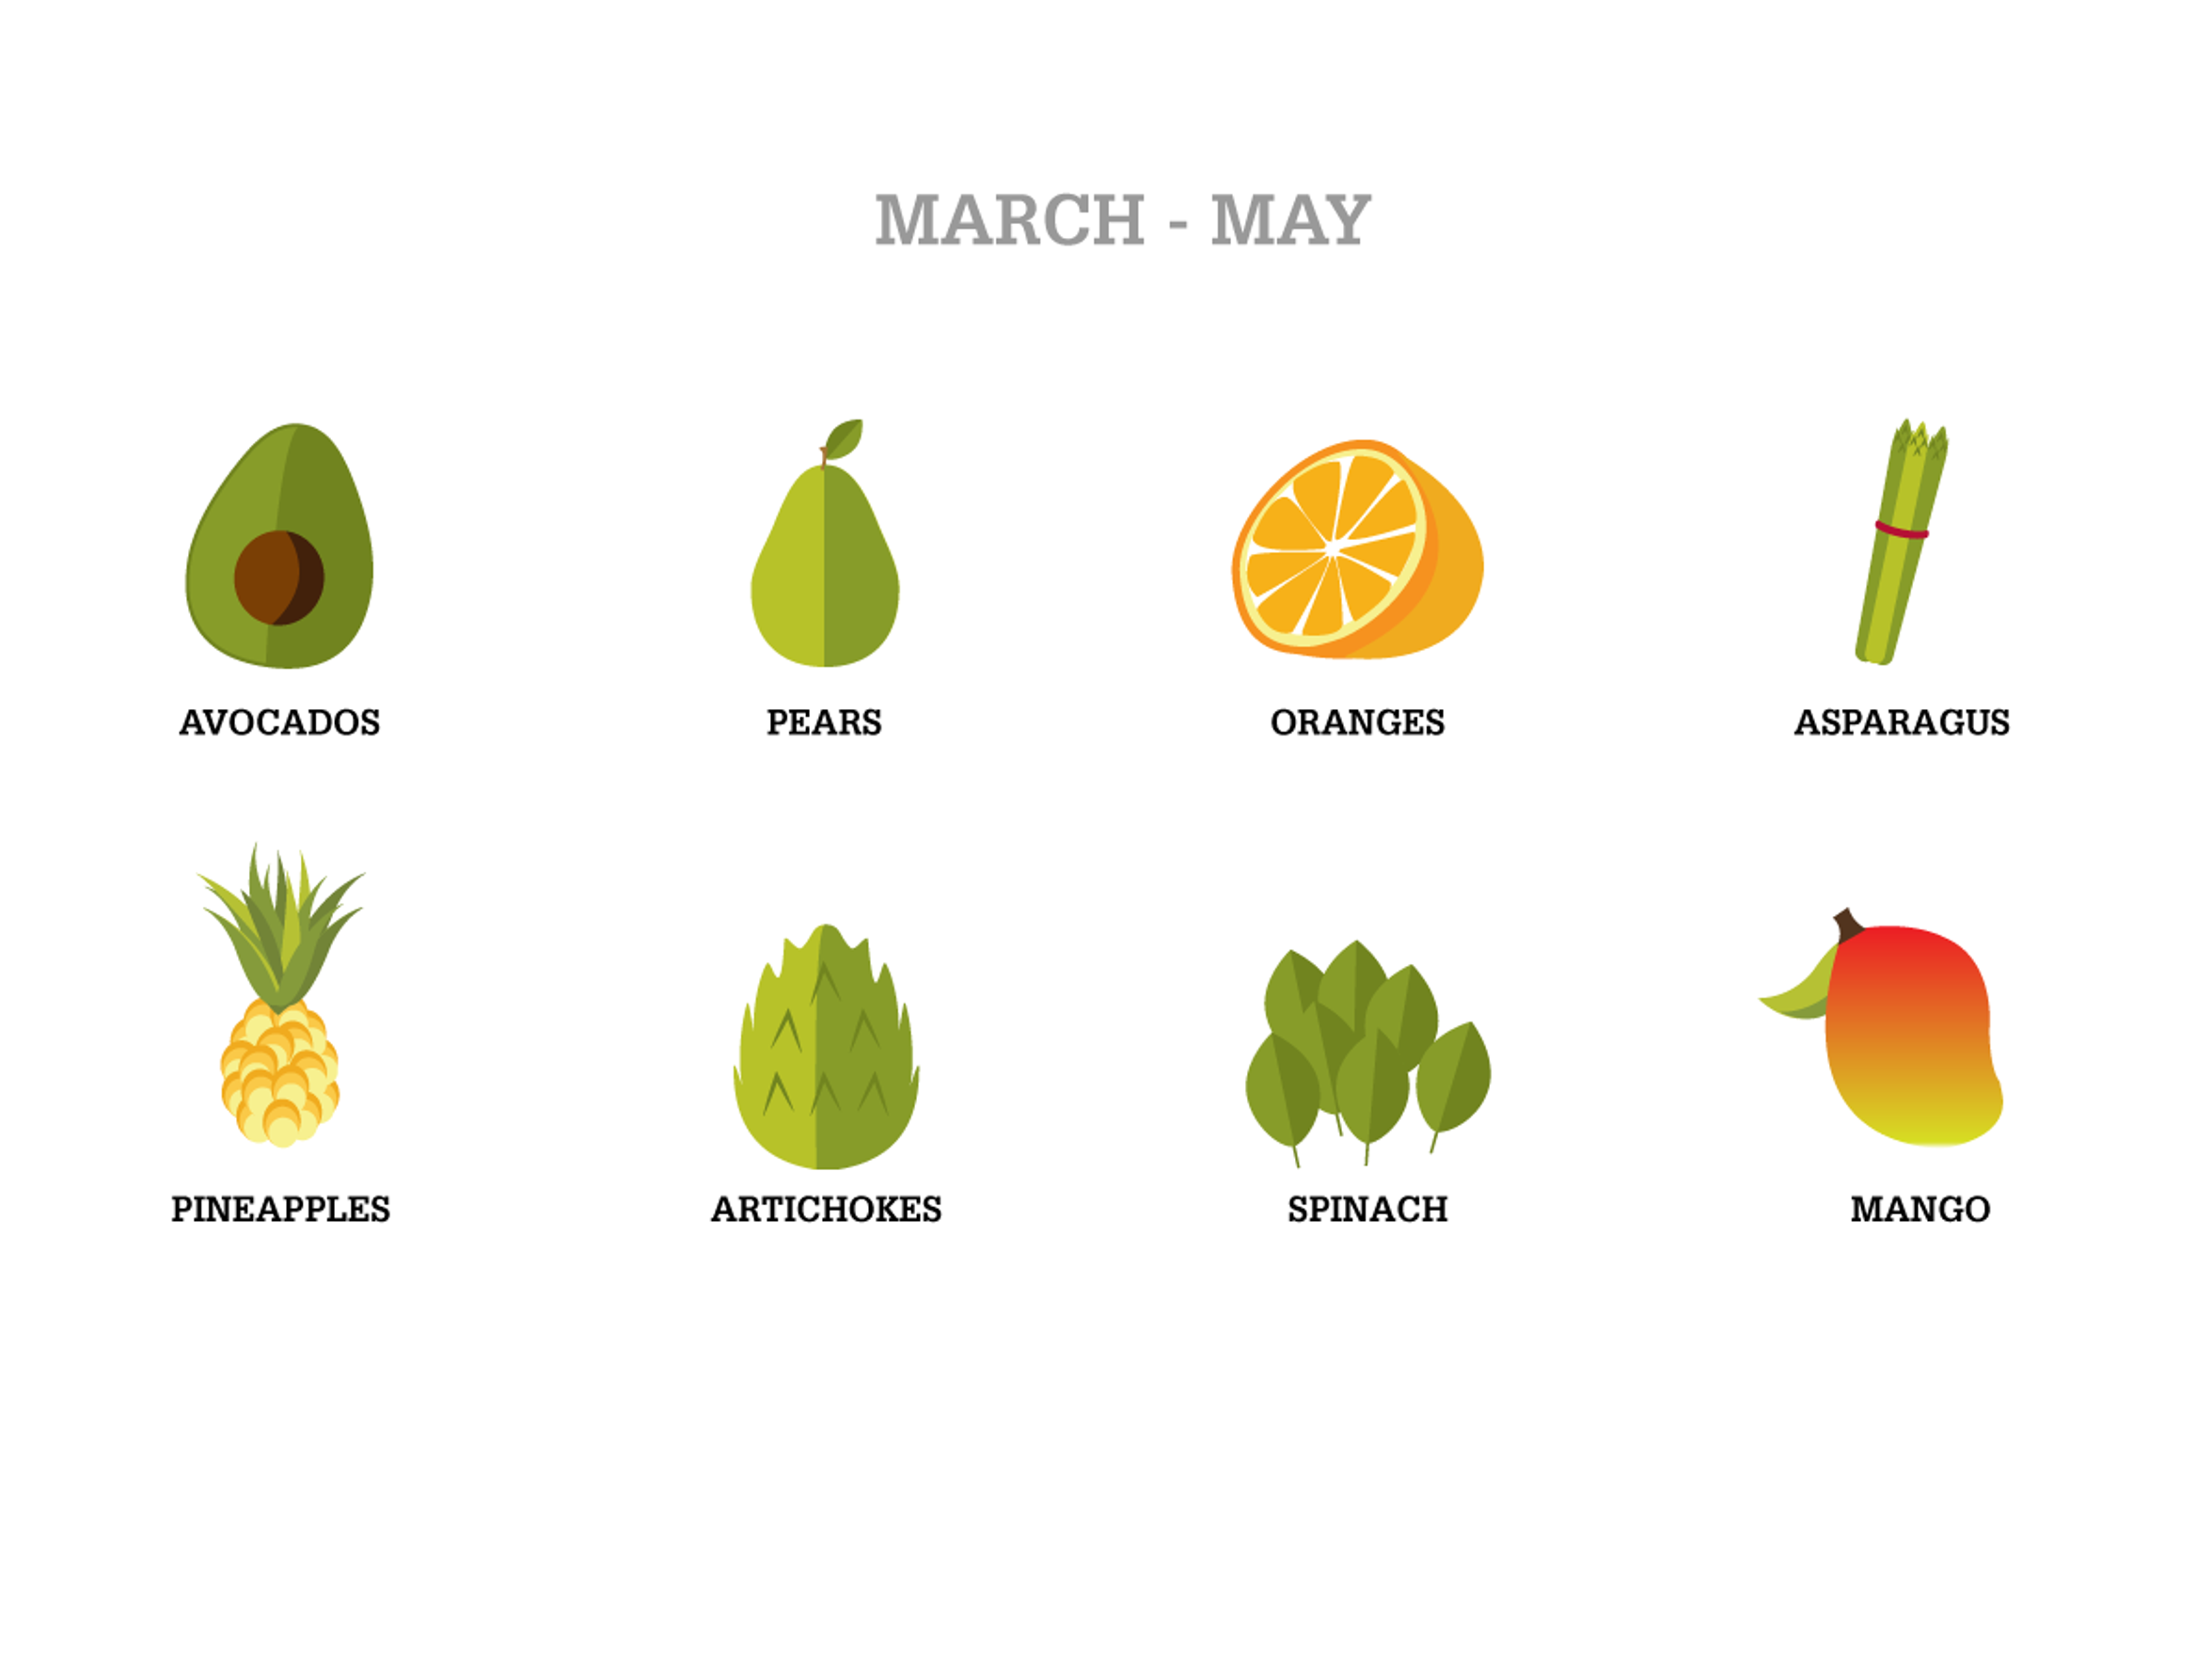 These fruits and vegetables are seasonal in spring.